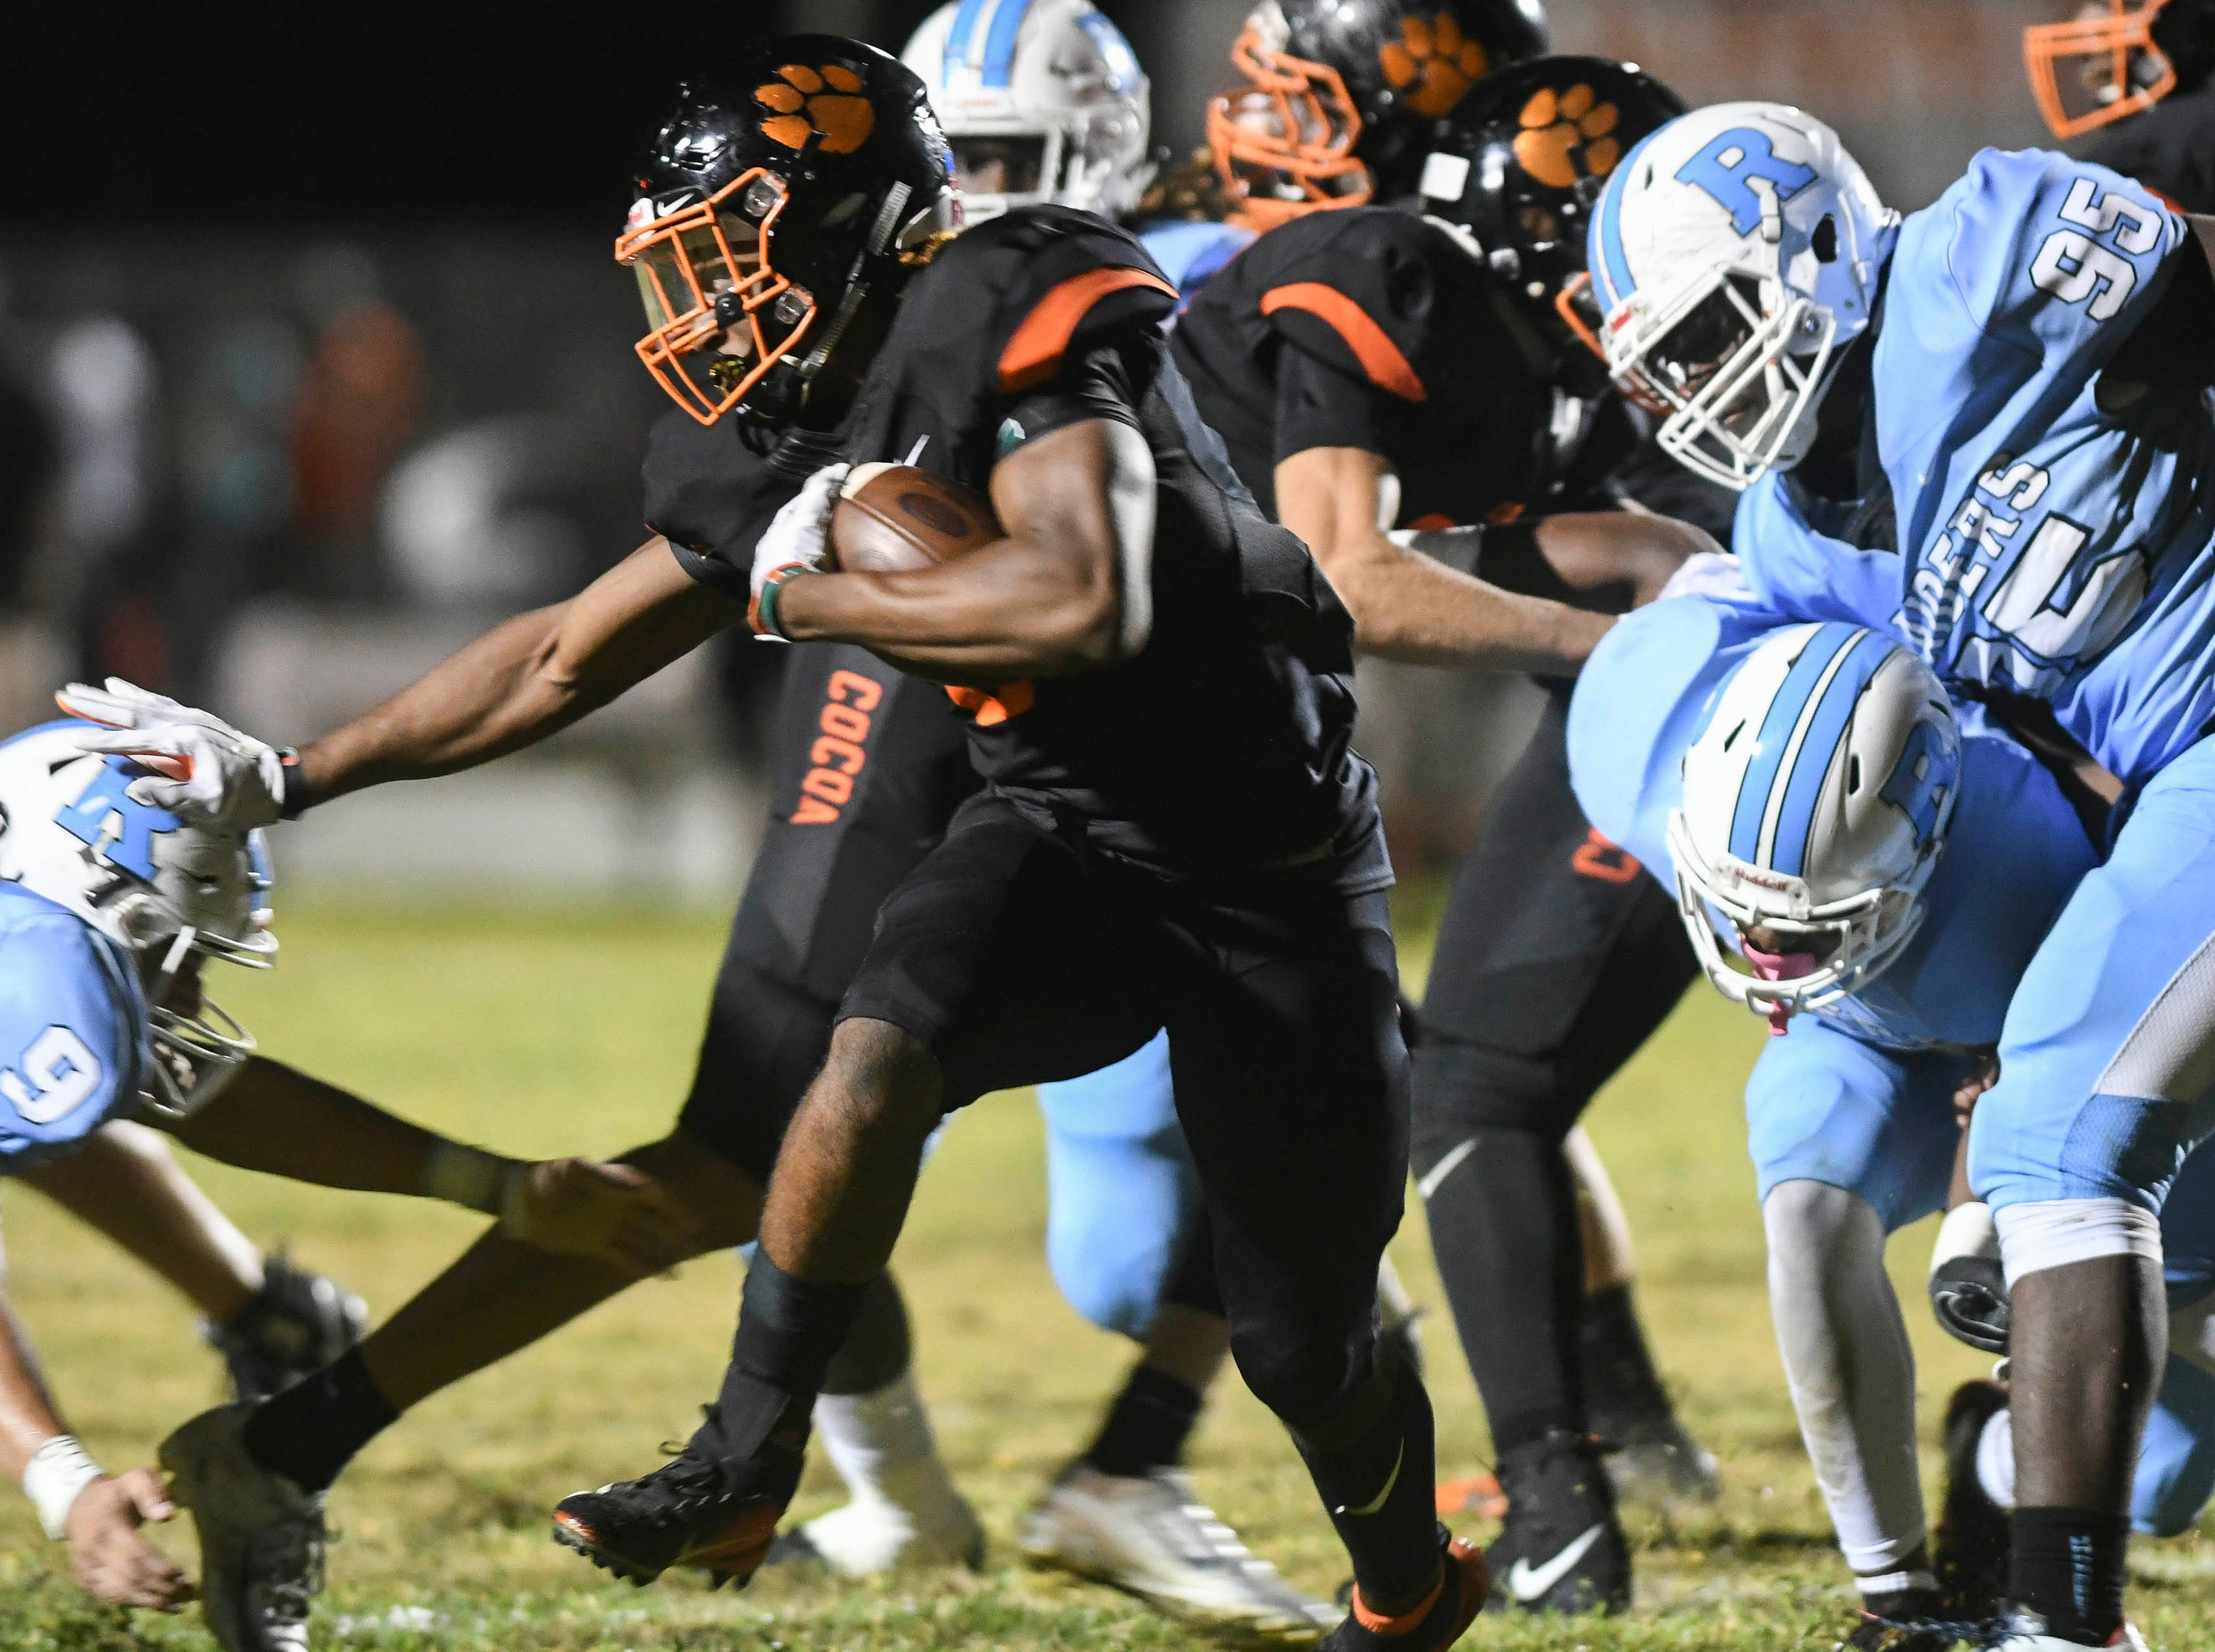 Cocoa's Caziah Holmes (8) runs the ball during Friday's game.